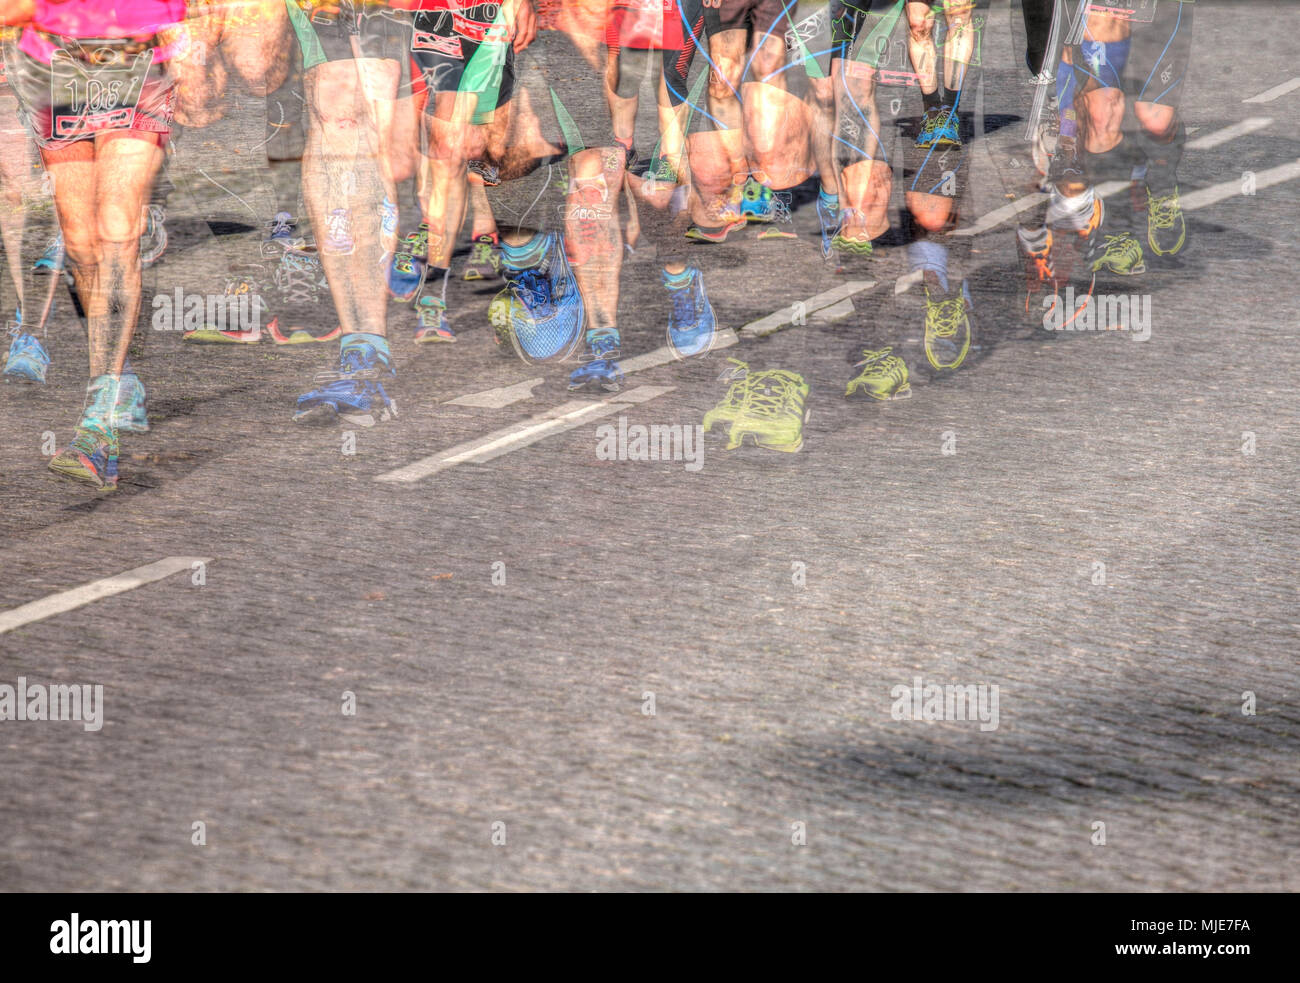 Runners on the Bremen Marathon, Bremen, Germany, Europe - Stock Image